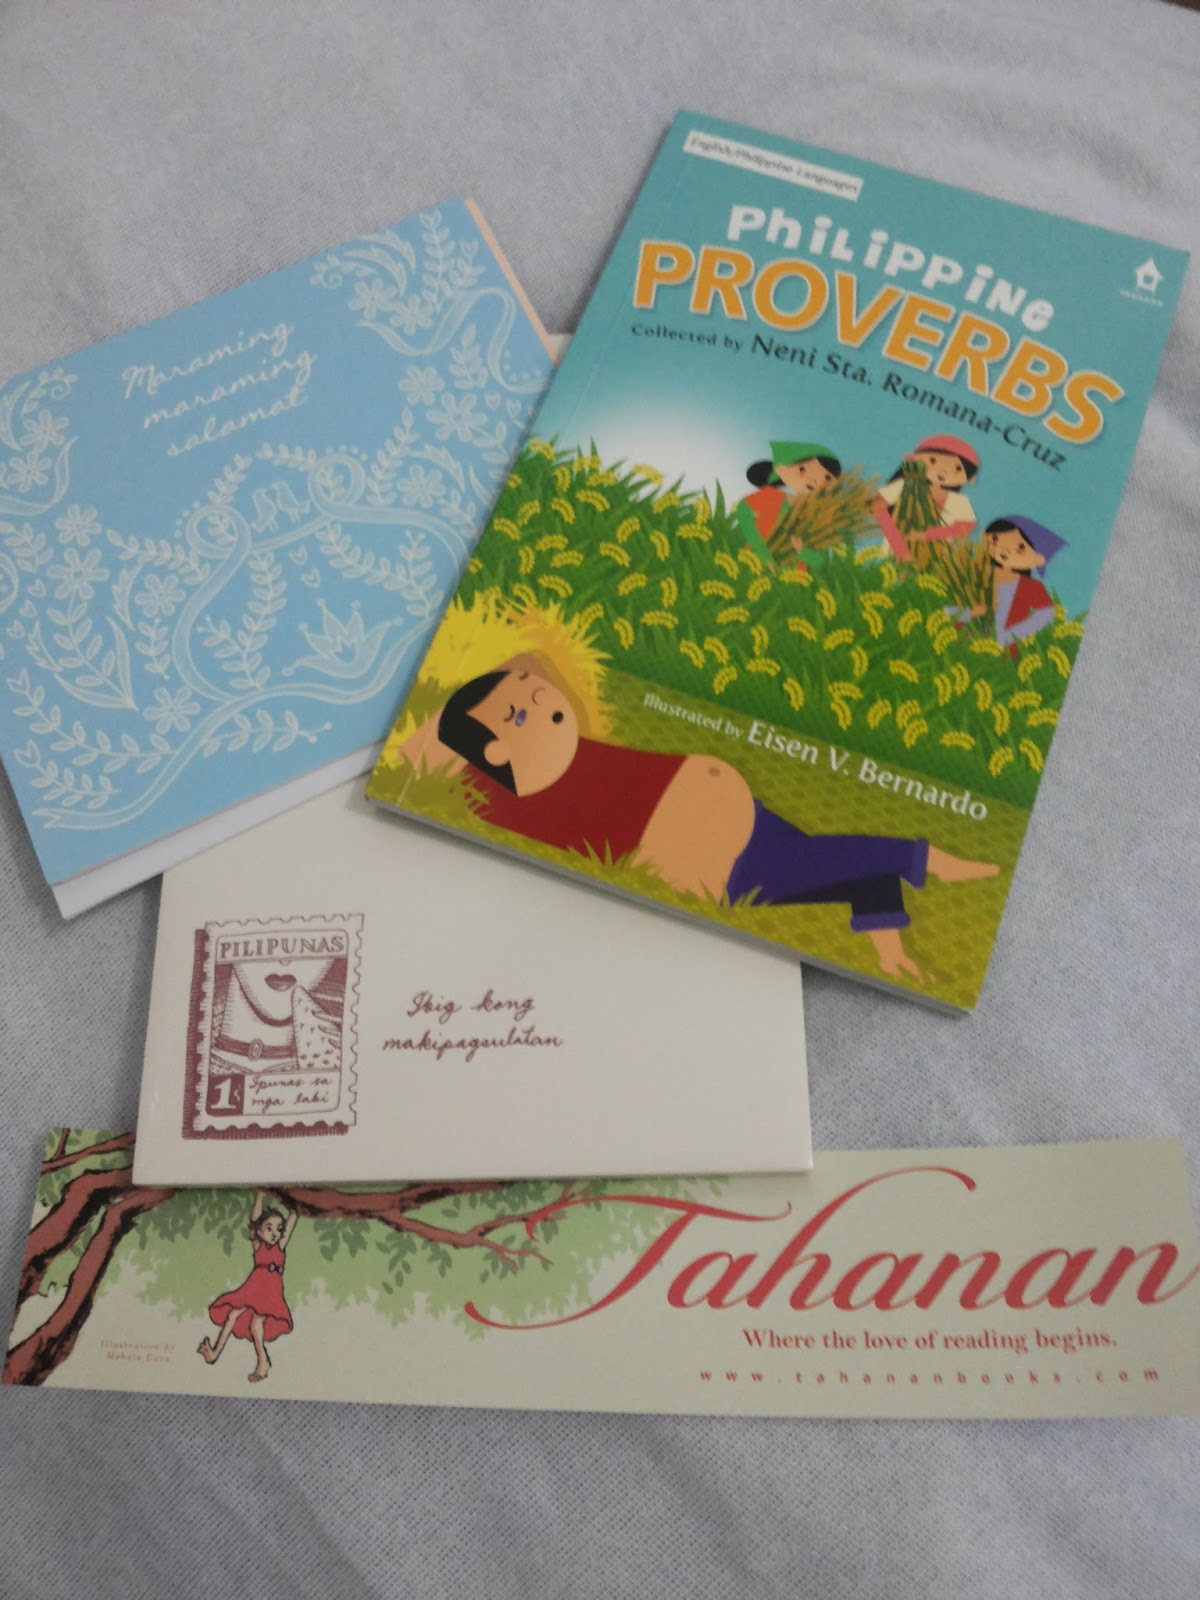 PHILIPPINE PROVERBS BOOK LAUNCH: AN AFTERNOON OF WORDS